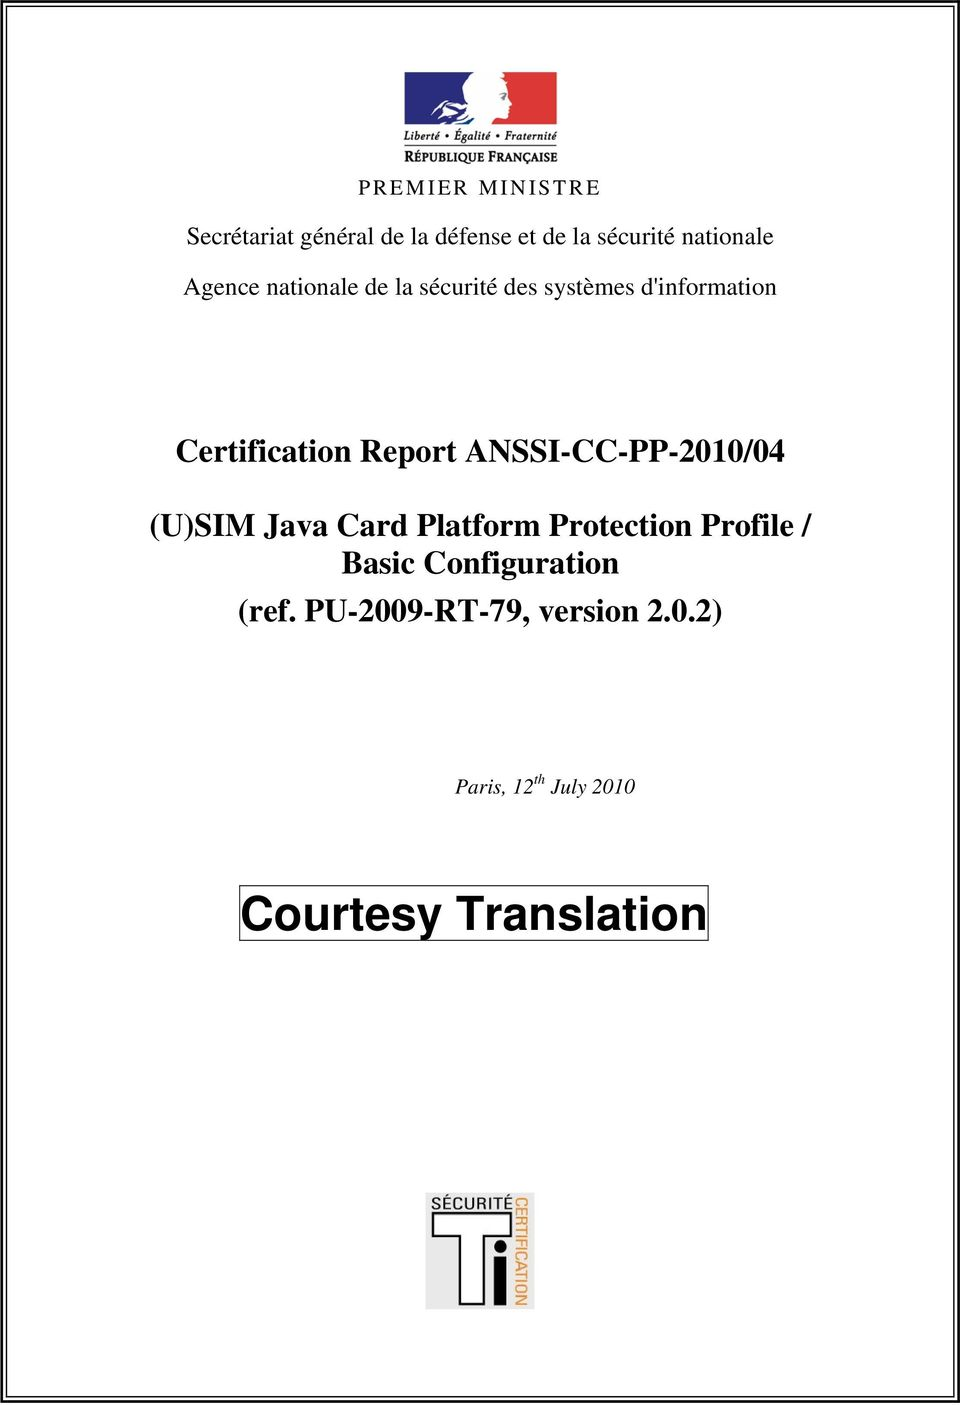 d'information Certification Report ANSSI-CC-PP-2010/04 (ref.